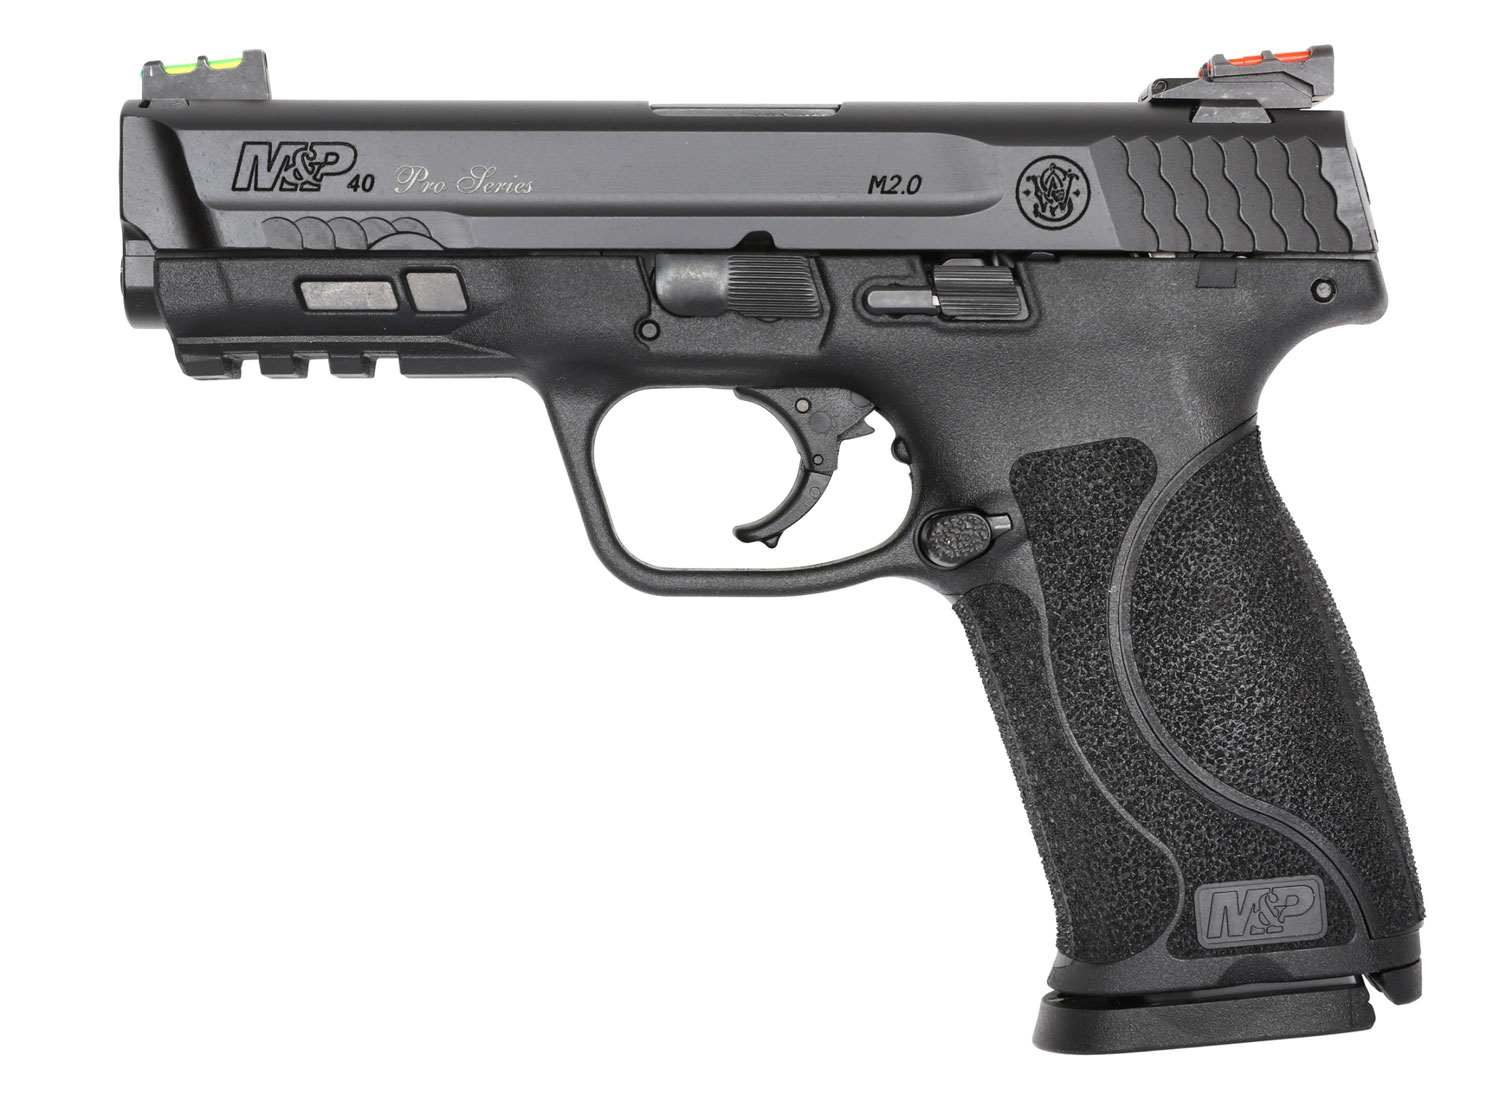 Smith & Wesson 11819 Performance Center M&P 40 M2.0 40 S&W Semi-Automatic Striker Fire 4.25